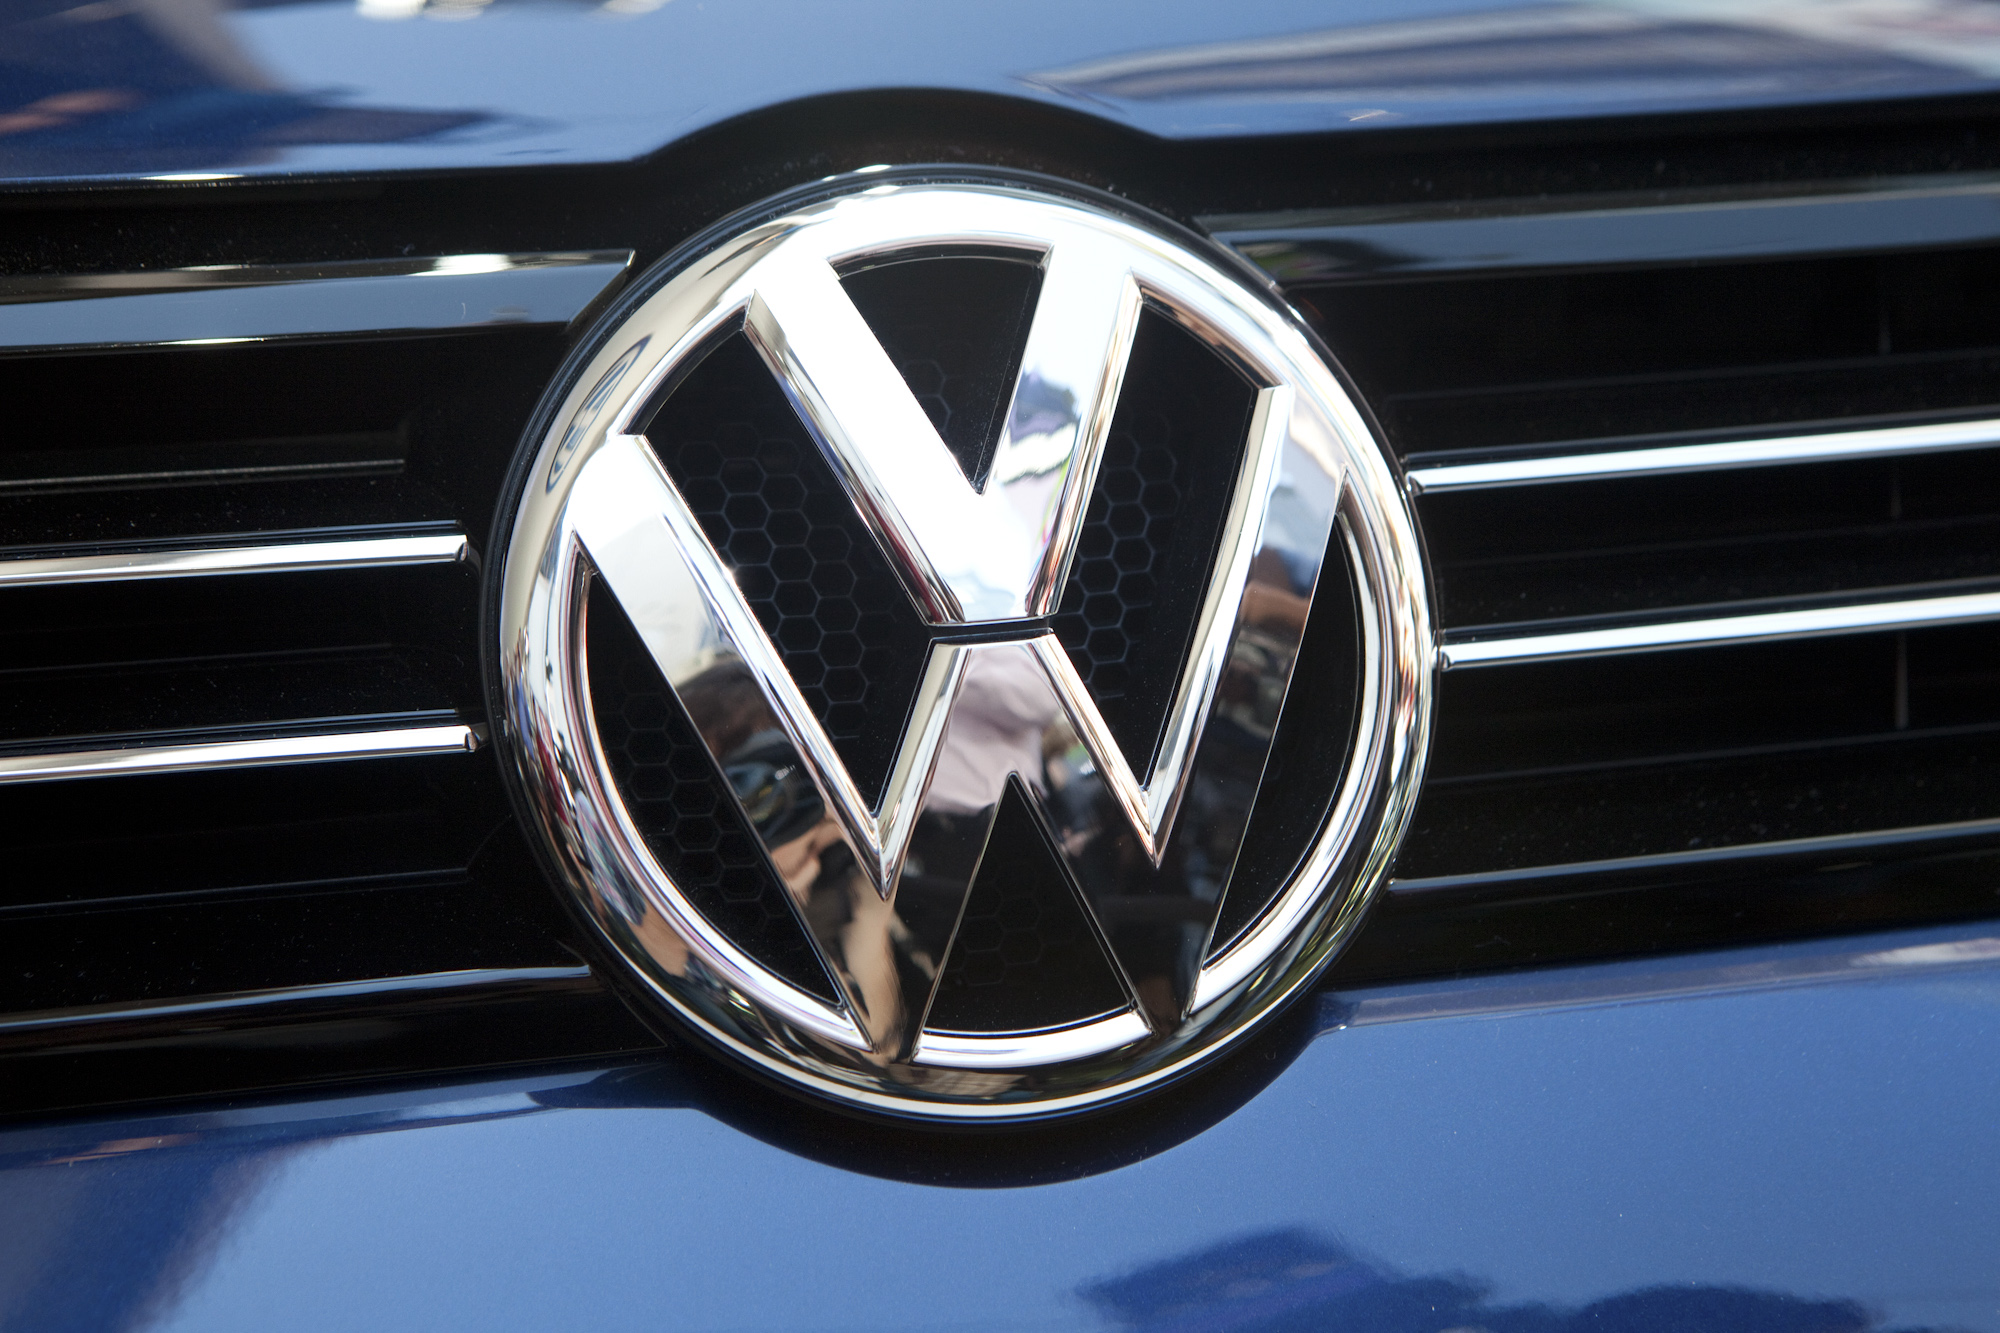 Volkswagen plans 'significantly' higher operating profit